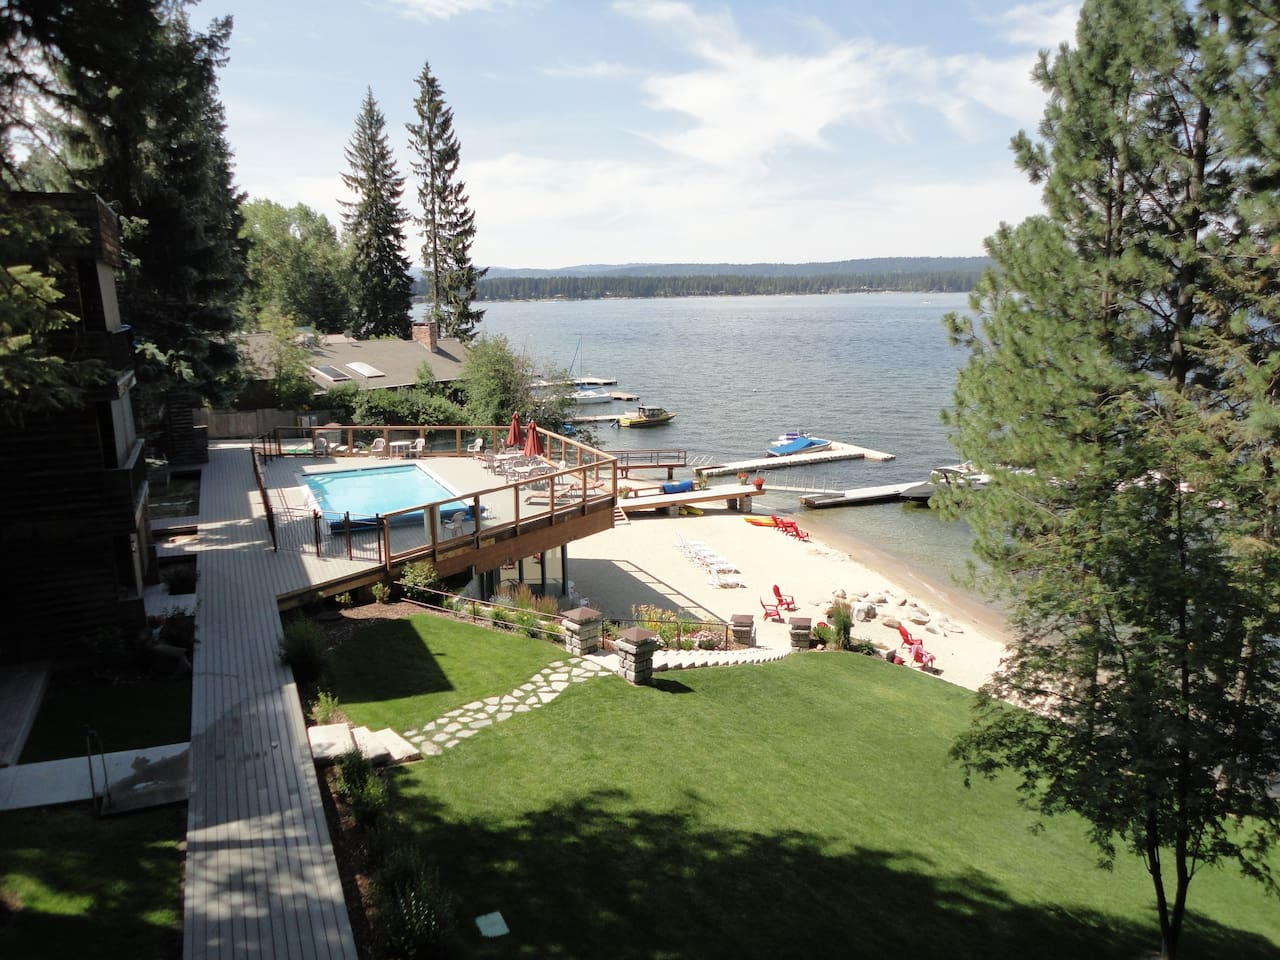 View from lakeside patio